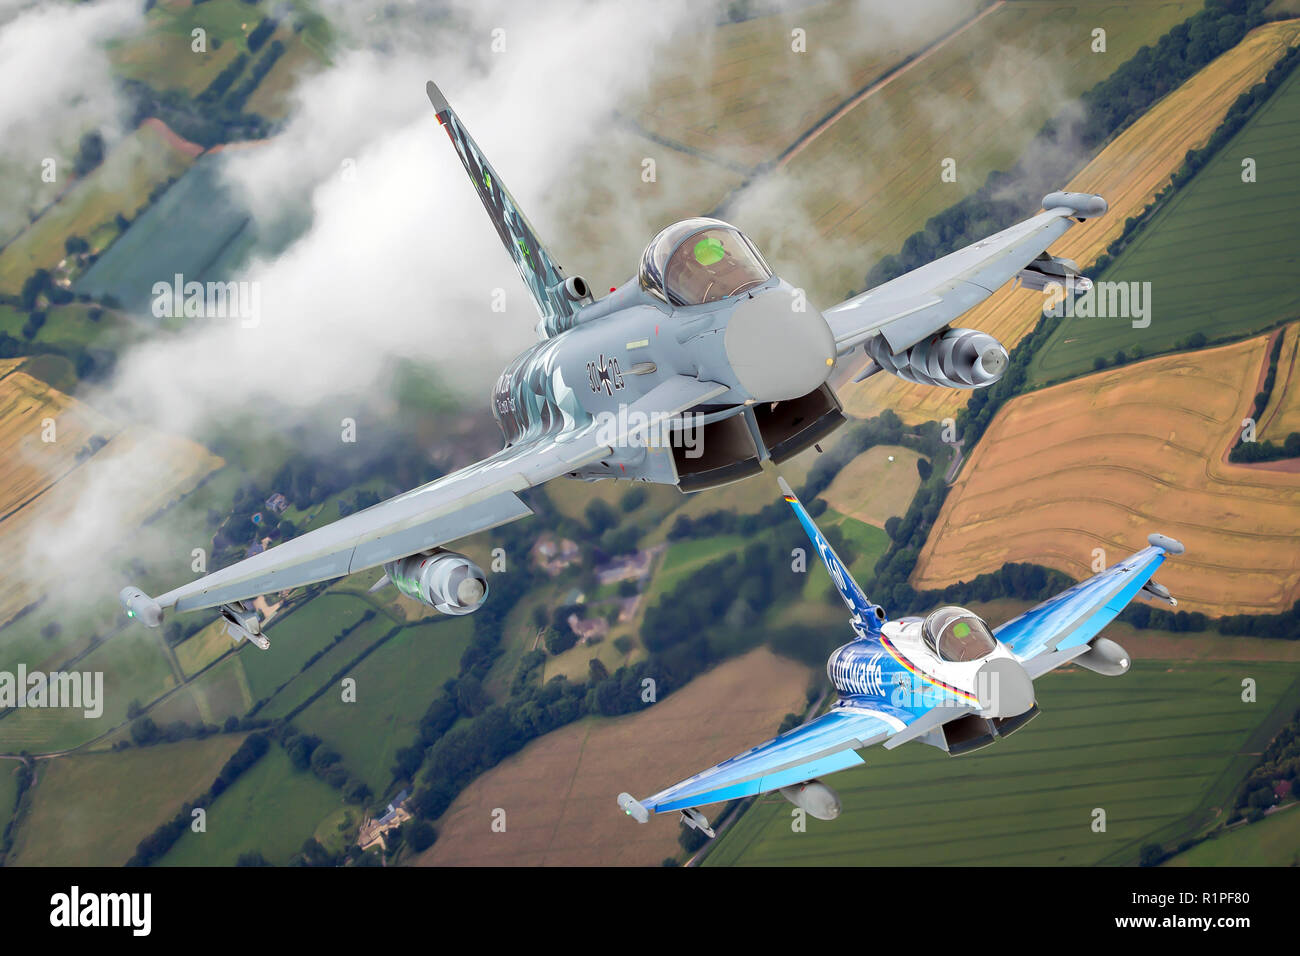 German luftwaffe Eurofighter Typhoon a twin-engine, canard–delta wing, multirole fighter. The Typhoon was designed originally as an air superiority fi - Stock Image